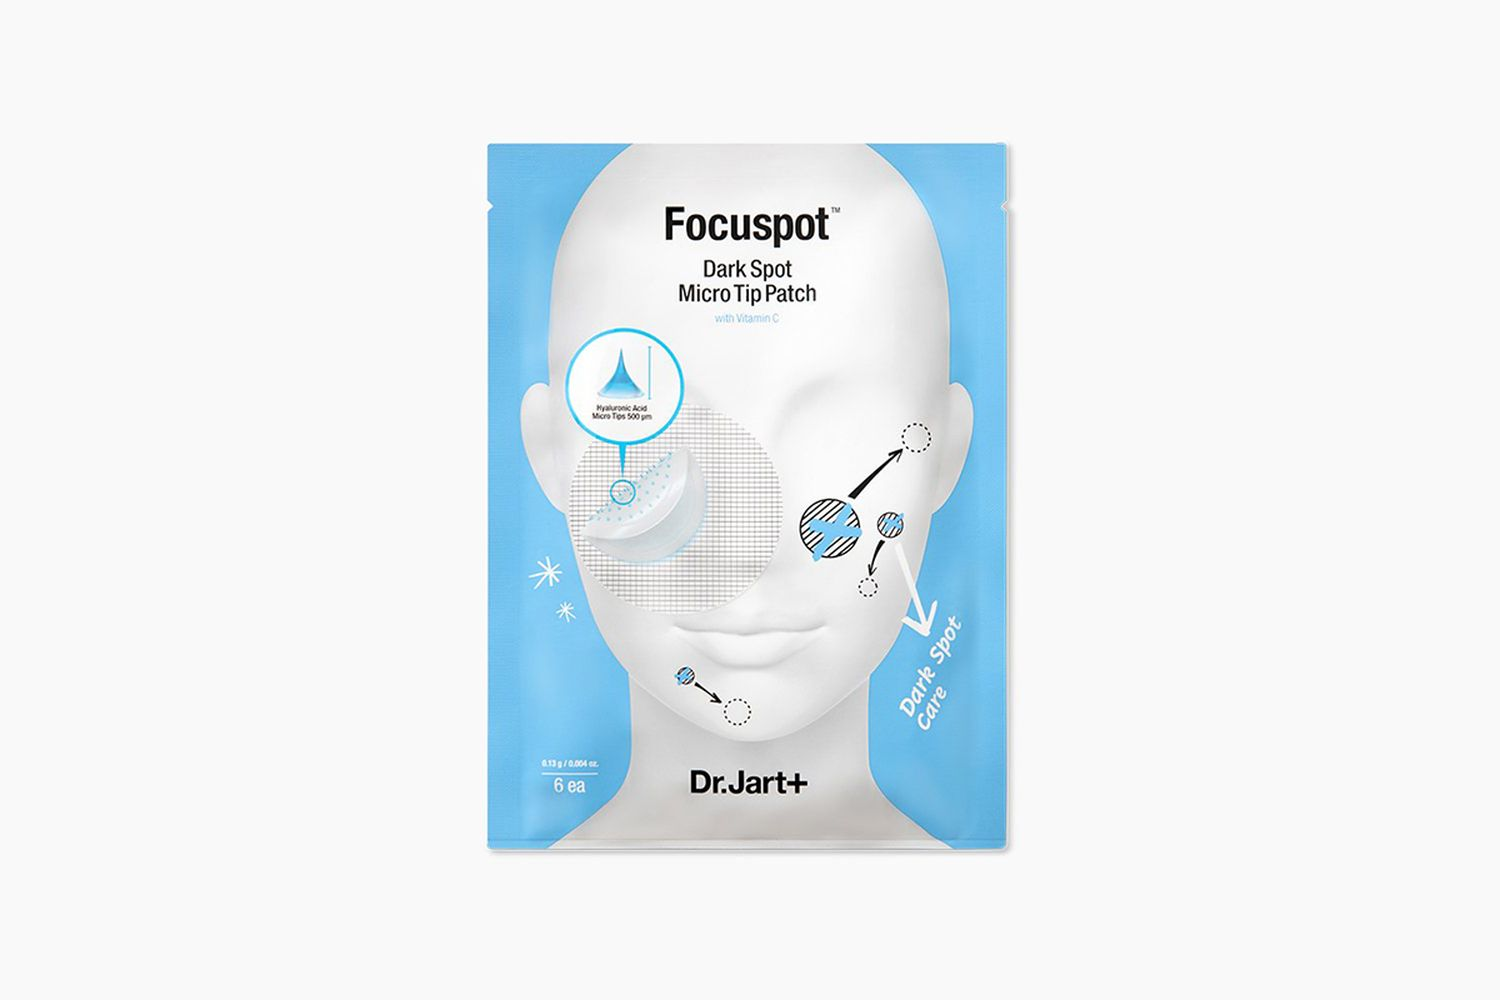 Focuspot Dark Spot Micro Tip Patch